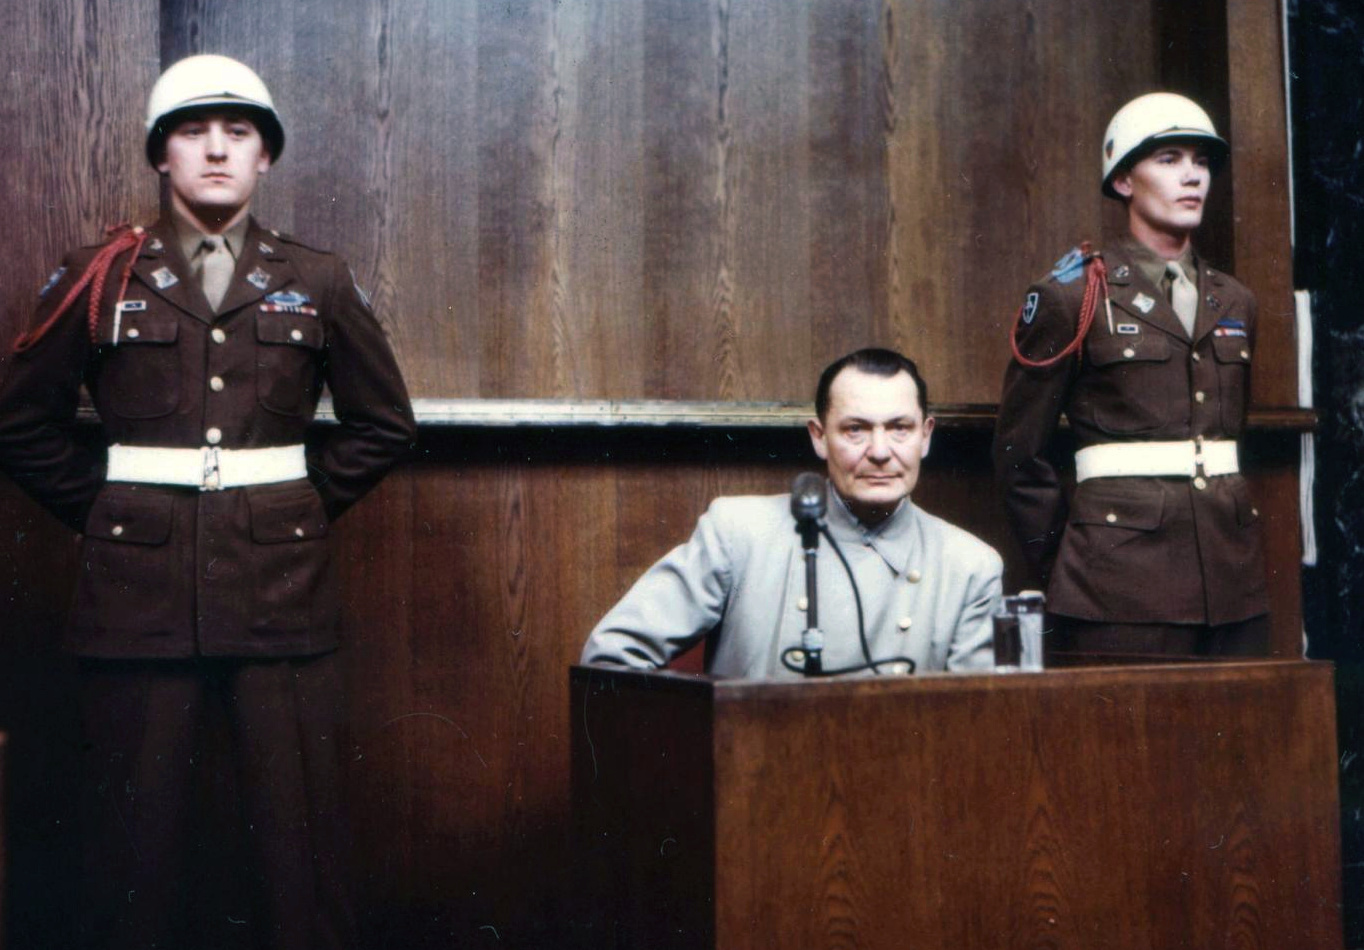 File:Goering on trial (color).jpg